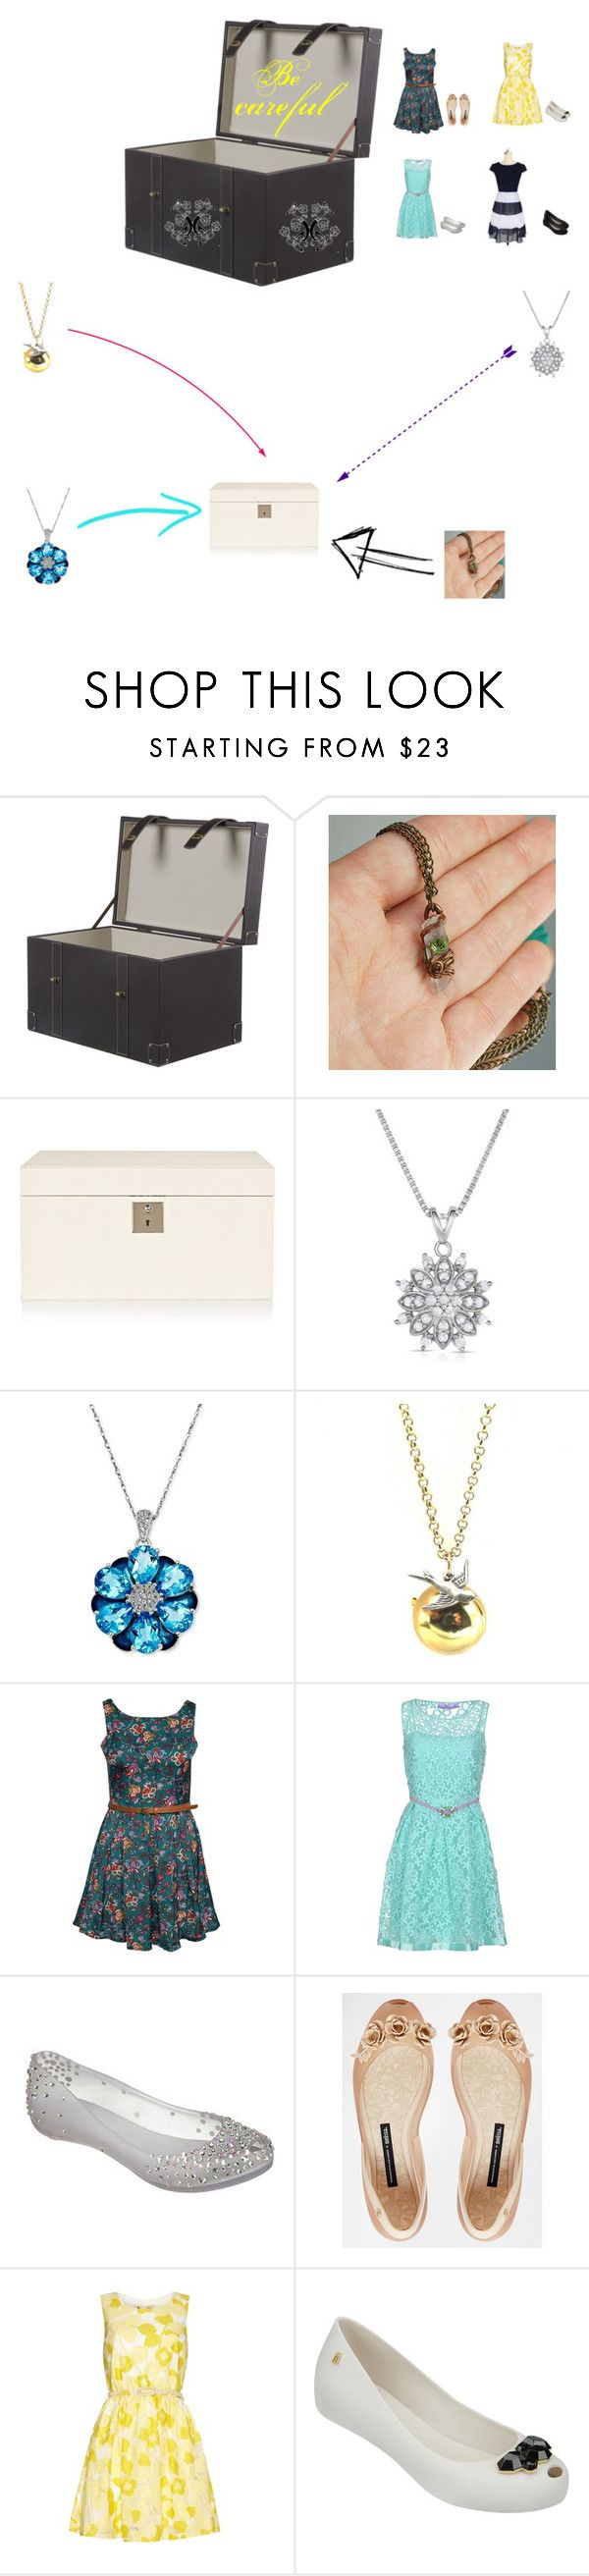 """""""Presente"""" by isaahliz ❤ liked on Polyvore featuring Smythson, R.H. Macy's & Co., Glamorous, 22 Maggio, Melissa and Yumi"""